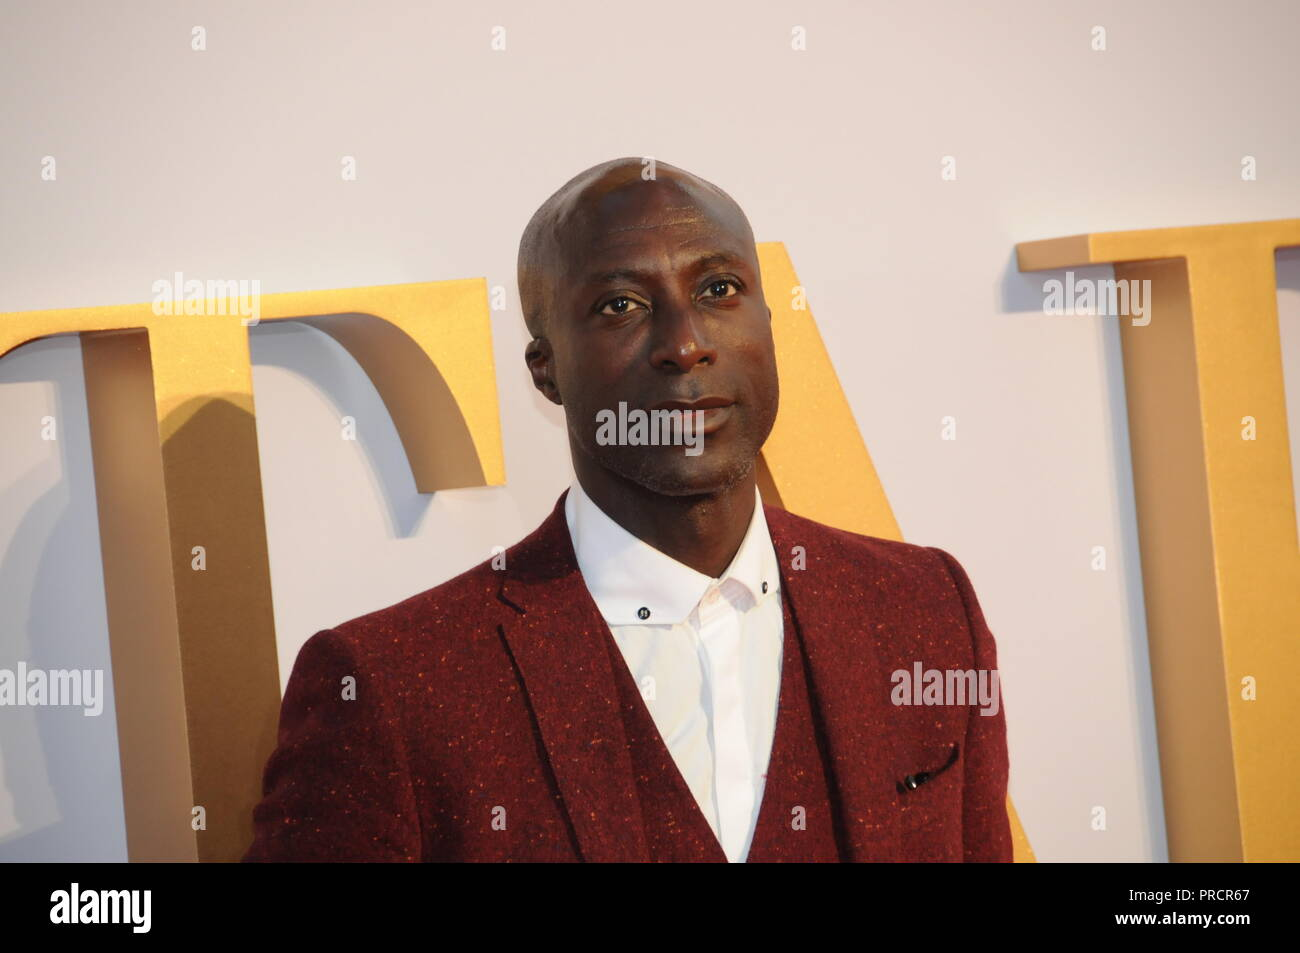 Celebrities on the red carpet, of the London film premiere, of A Star is Born. - Stock Image